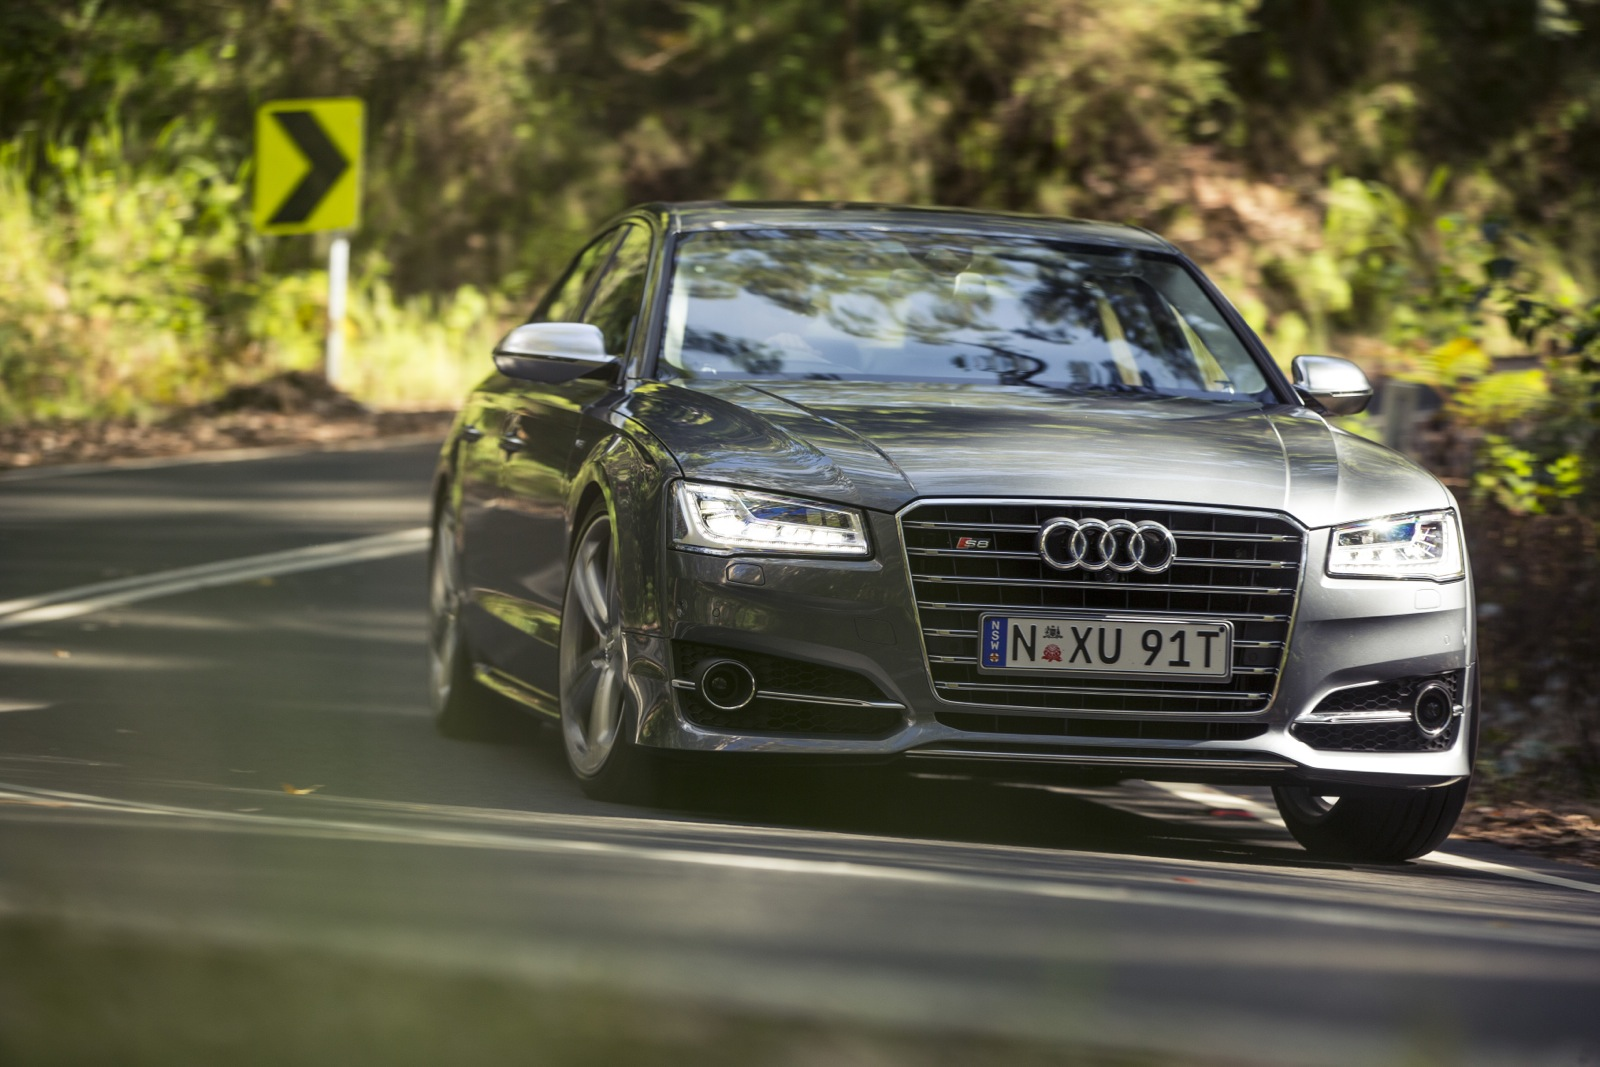 2014 audi a8 and s8 pricing and specifications photos. Black Bedroom Furniture Sets. Home Design Ideas